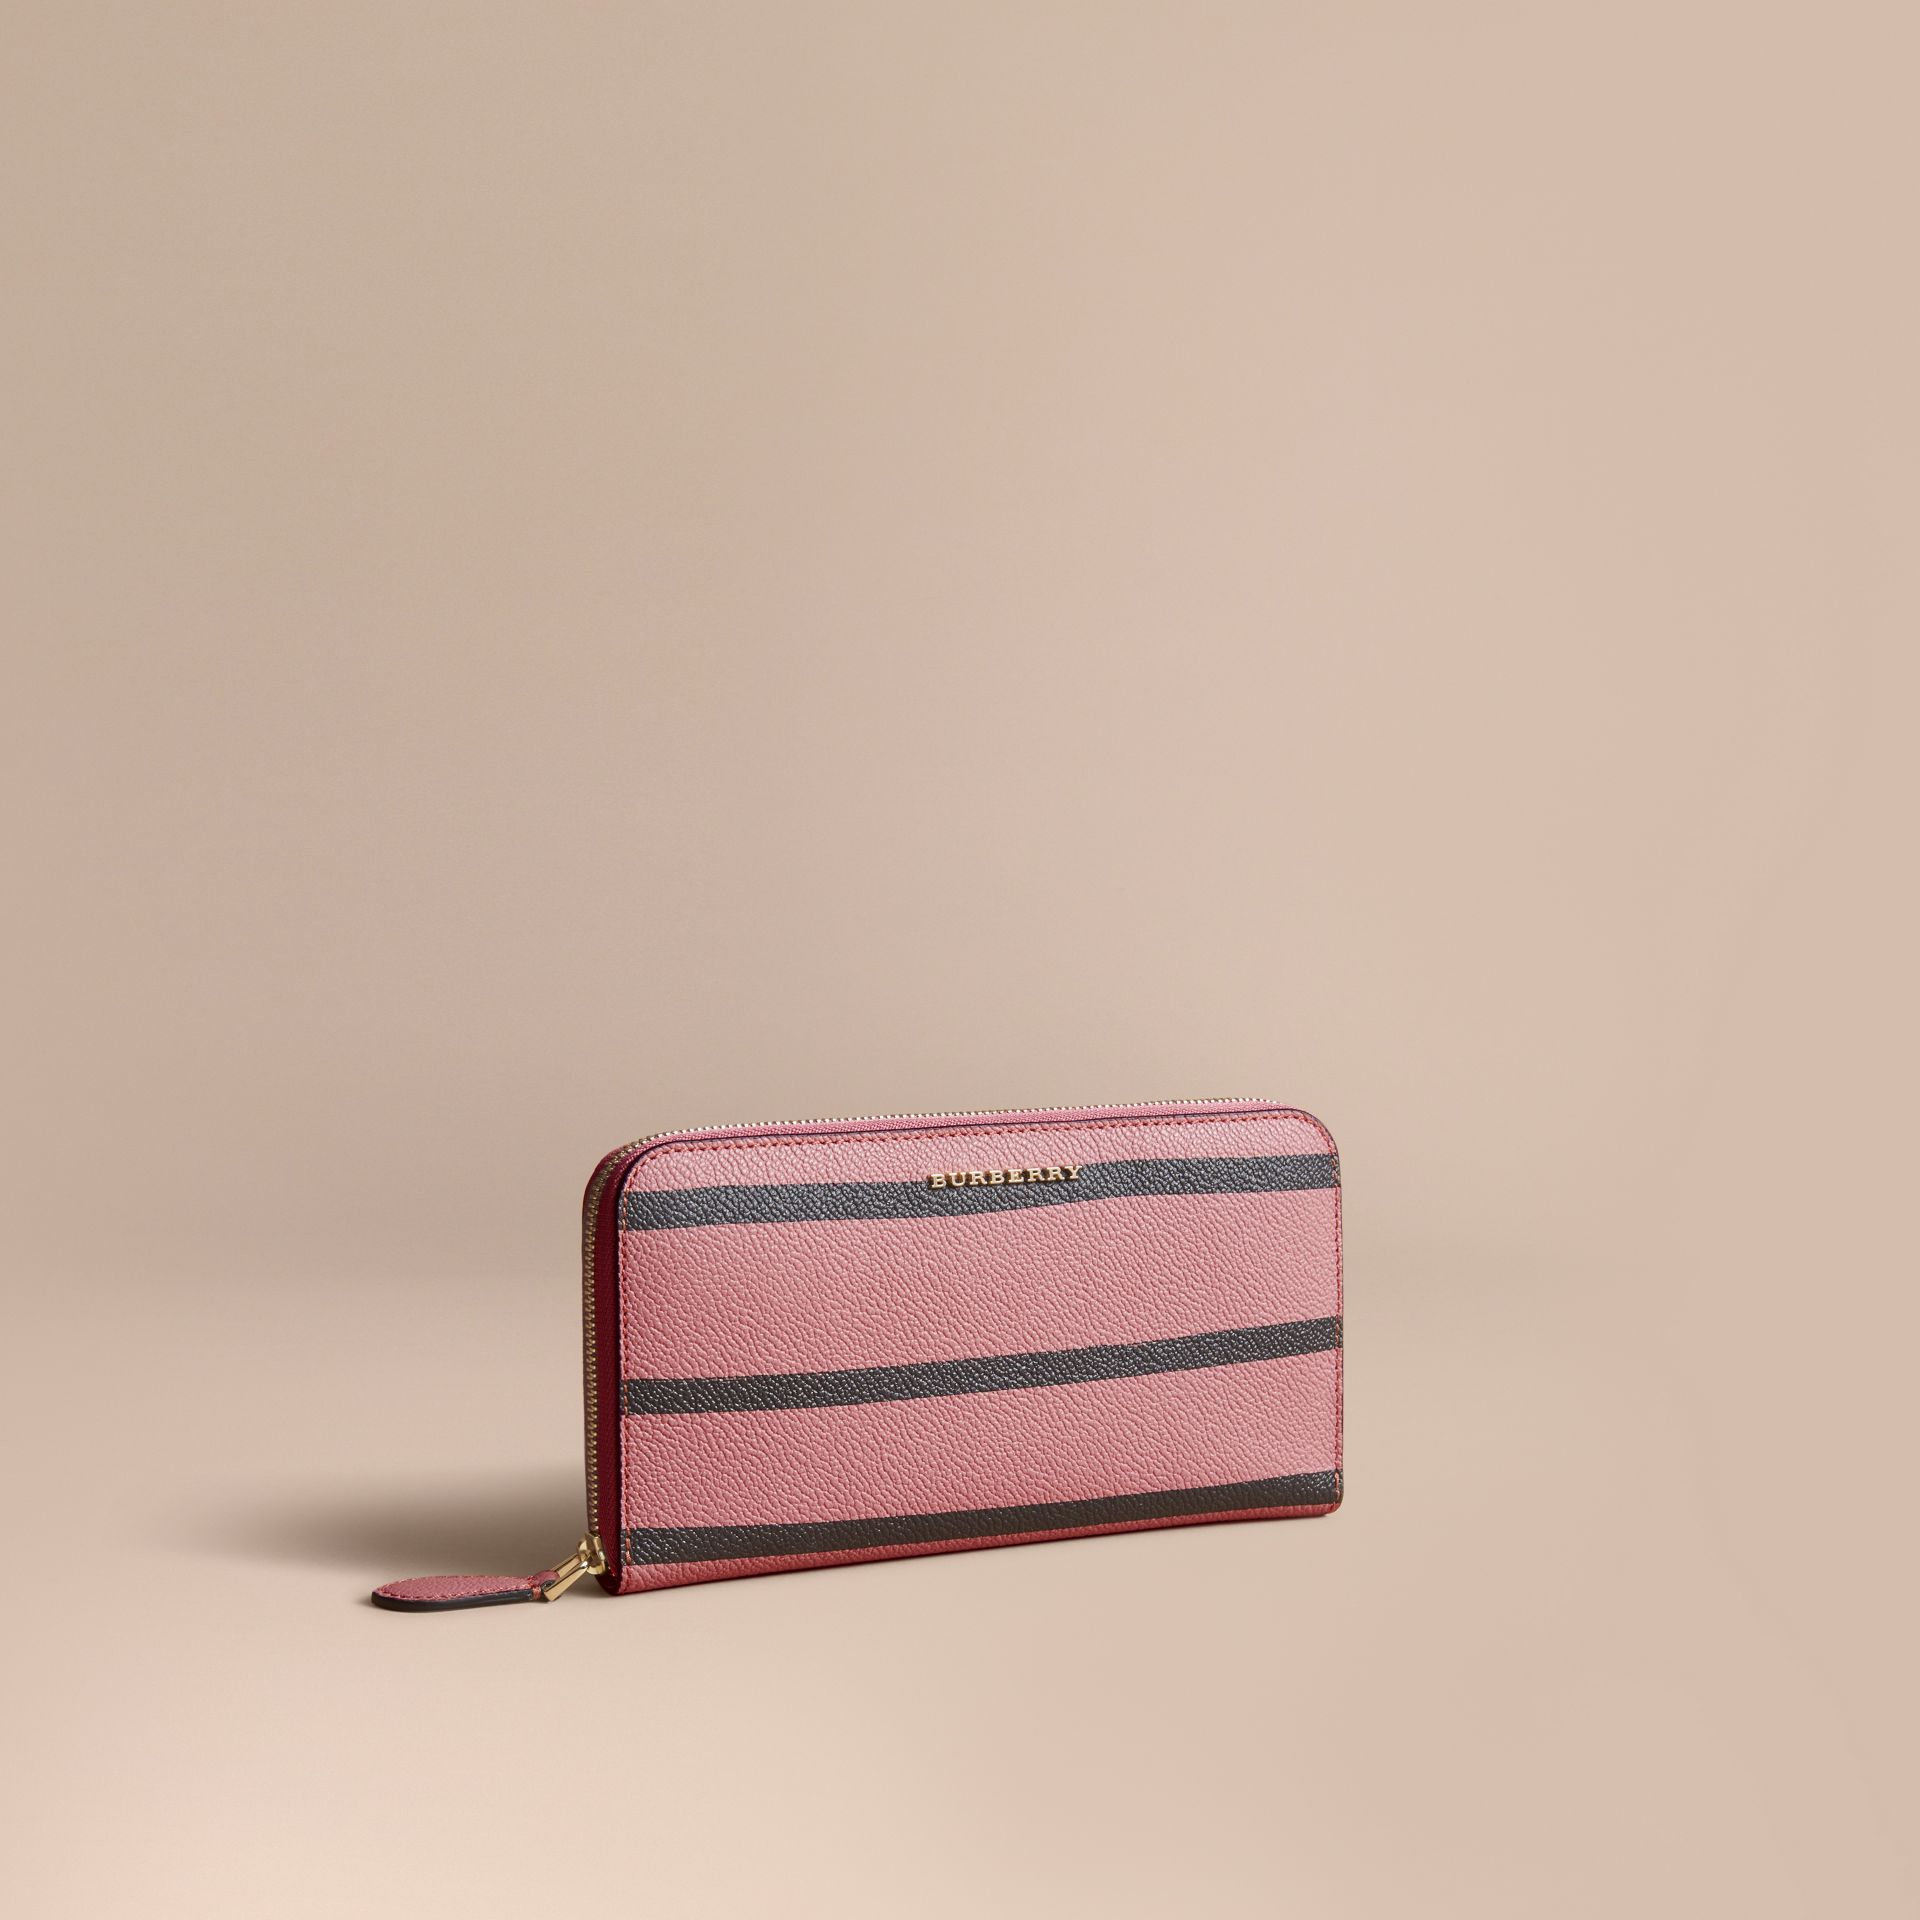 Trompe L'oeil Print Leather Ziparound Wallet - Women | Burberry - gallery image 2